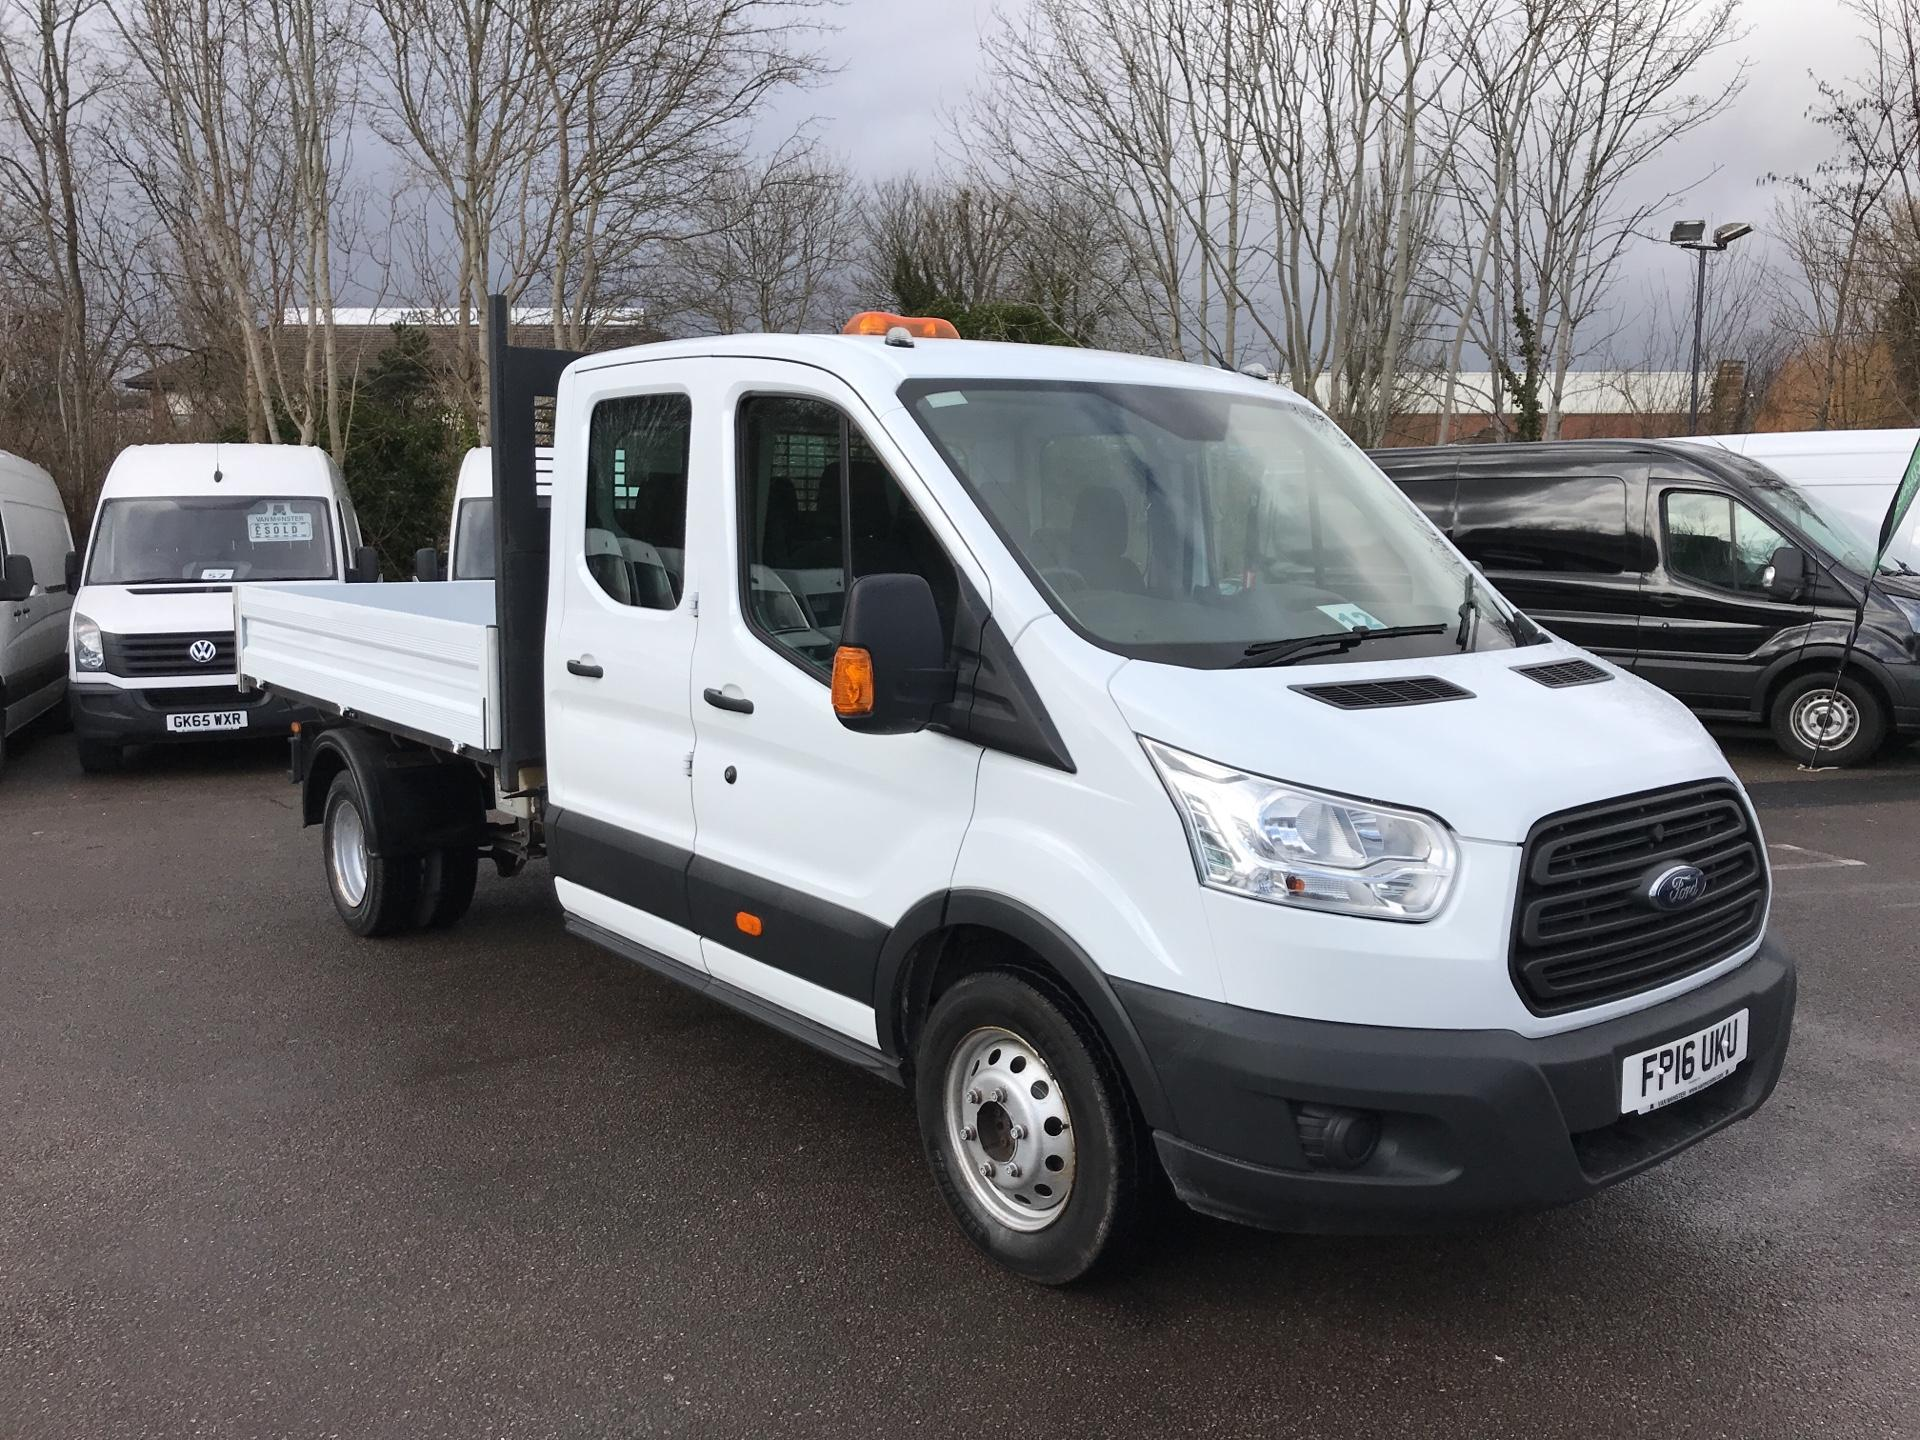 2016 Ford Transit 350 L3 DOUBLE CAB TIPPER 125PS EURO 5 (FP16UKU)